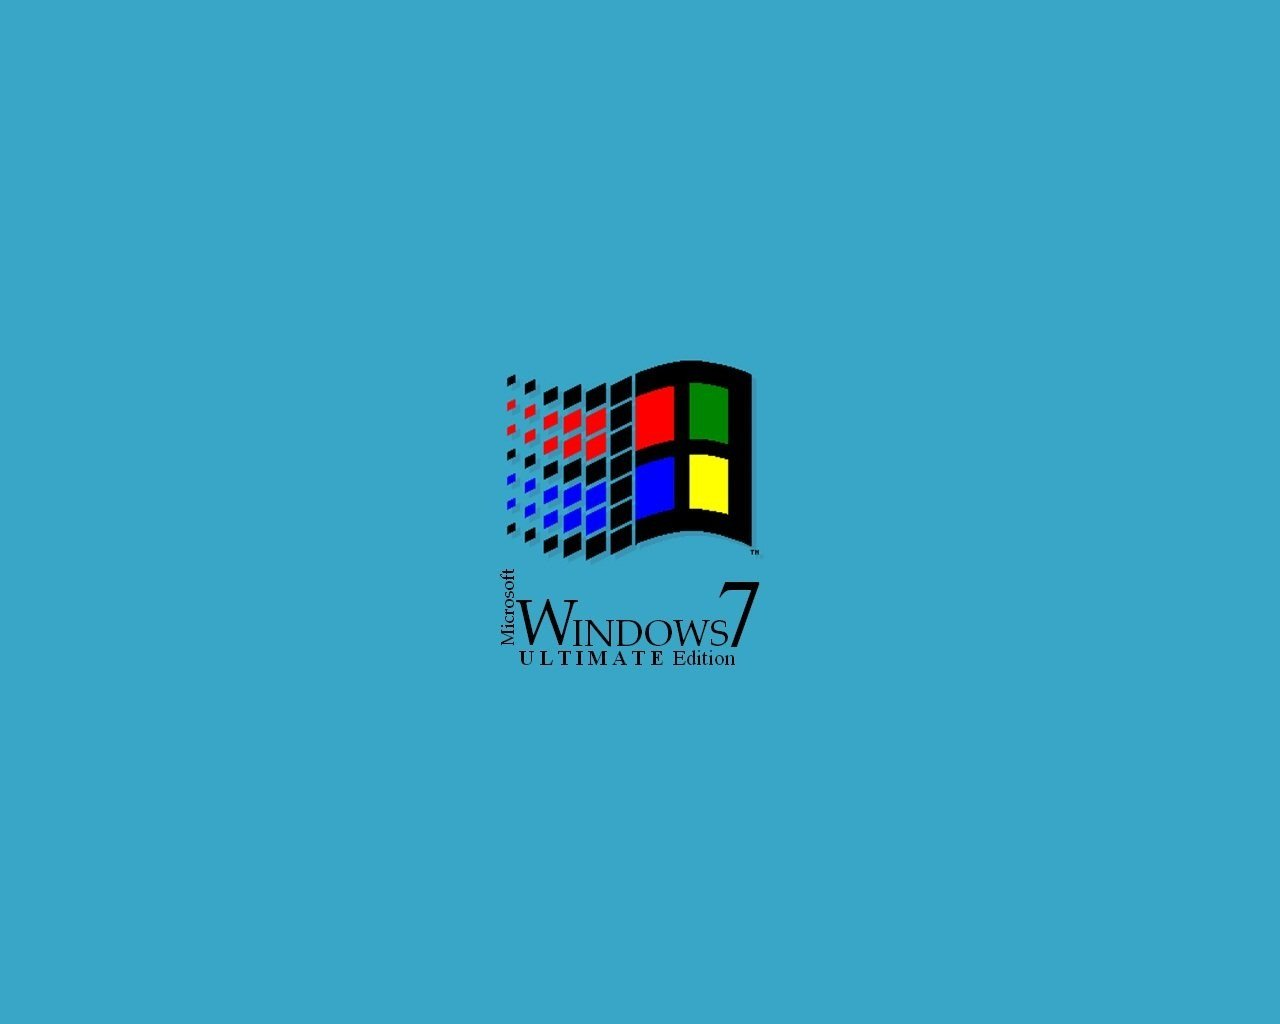 Download Wallpapers For Windows 7 Ultimate Gif